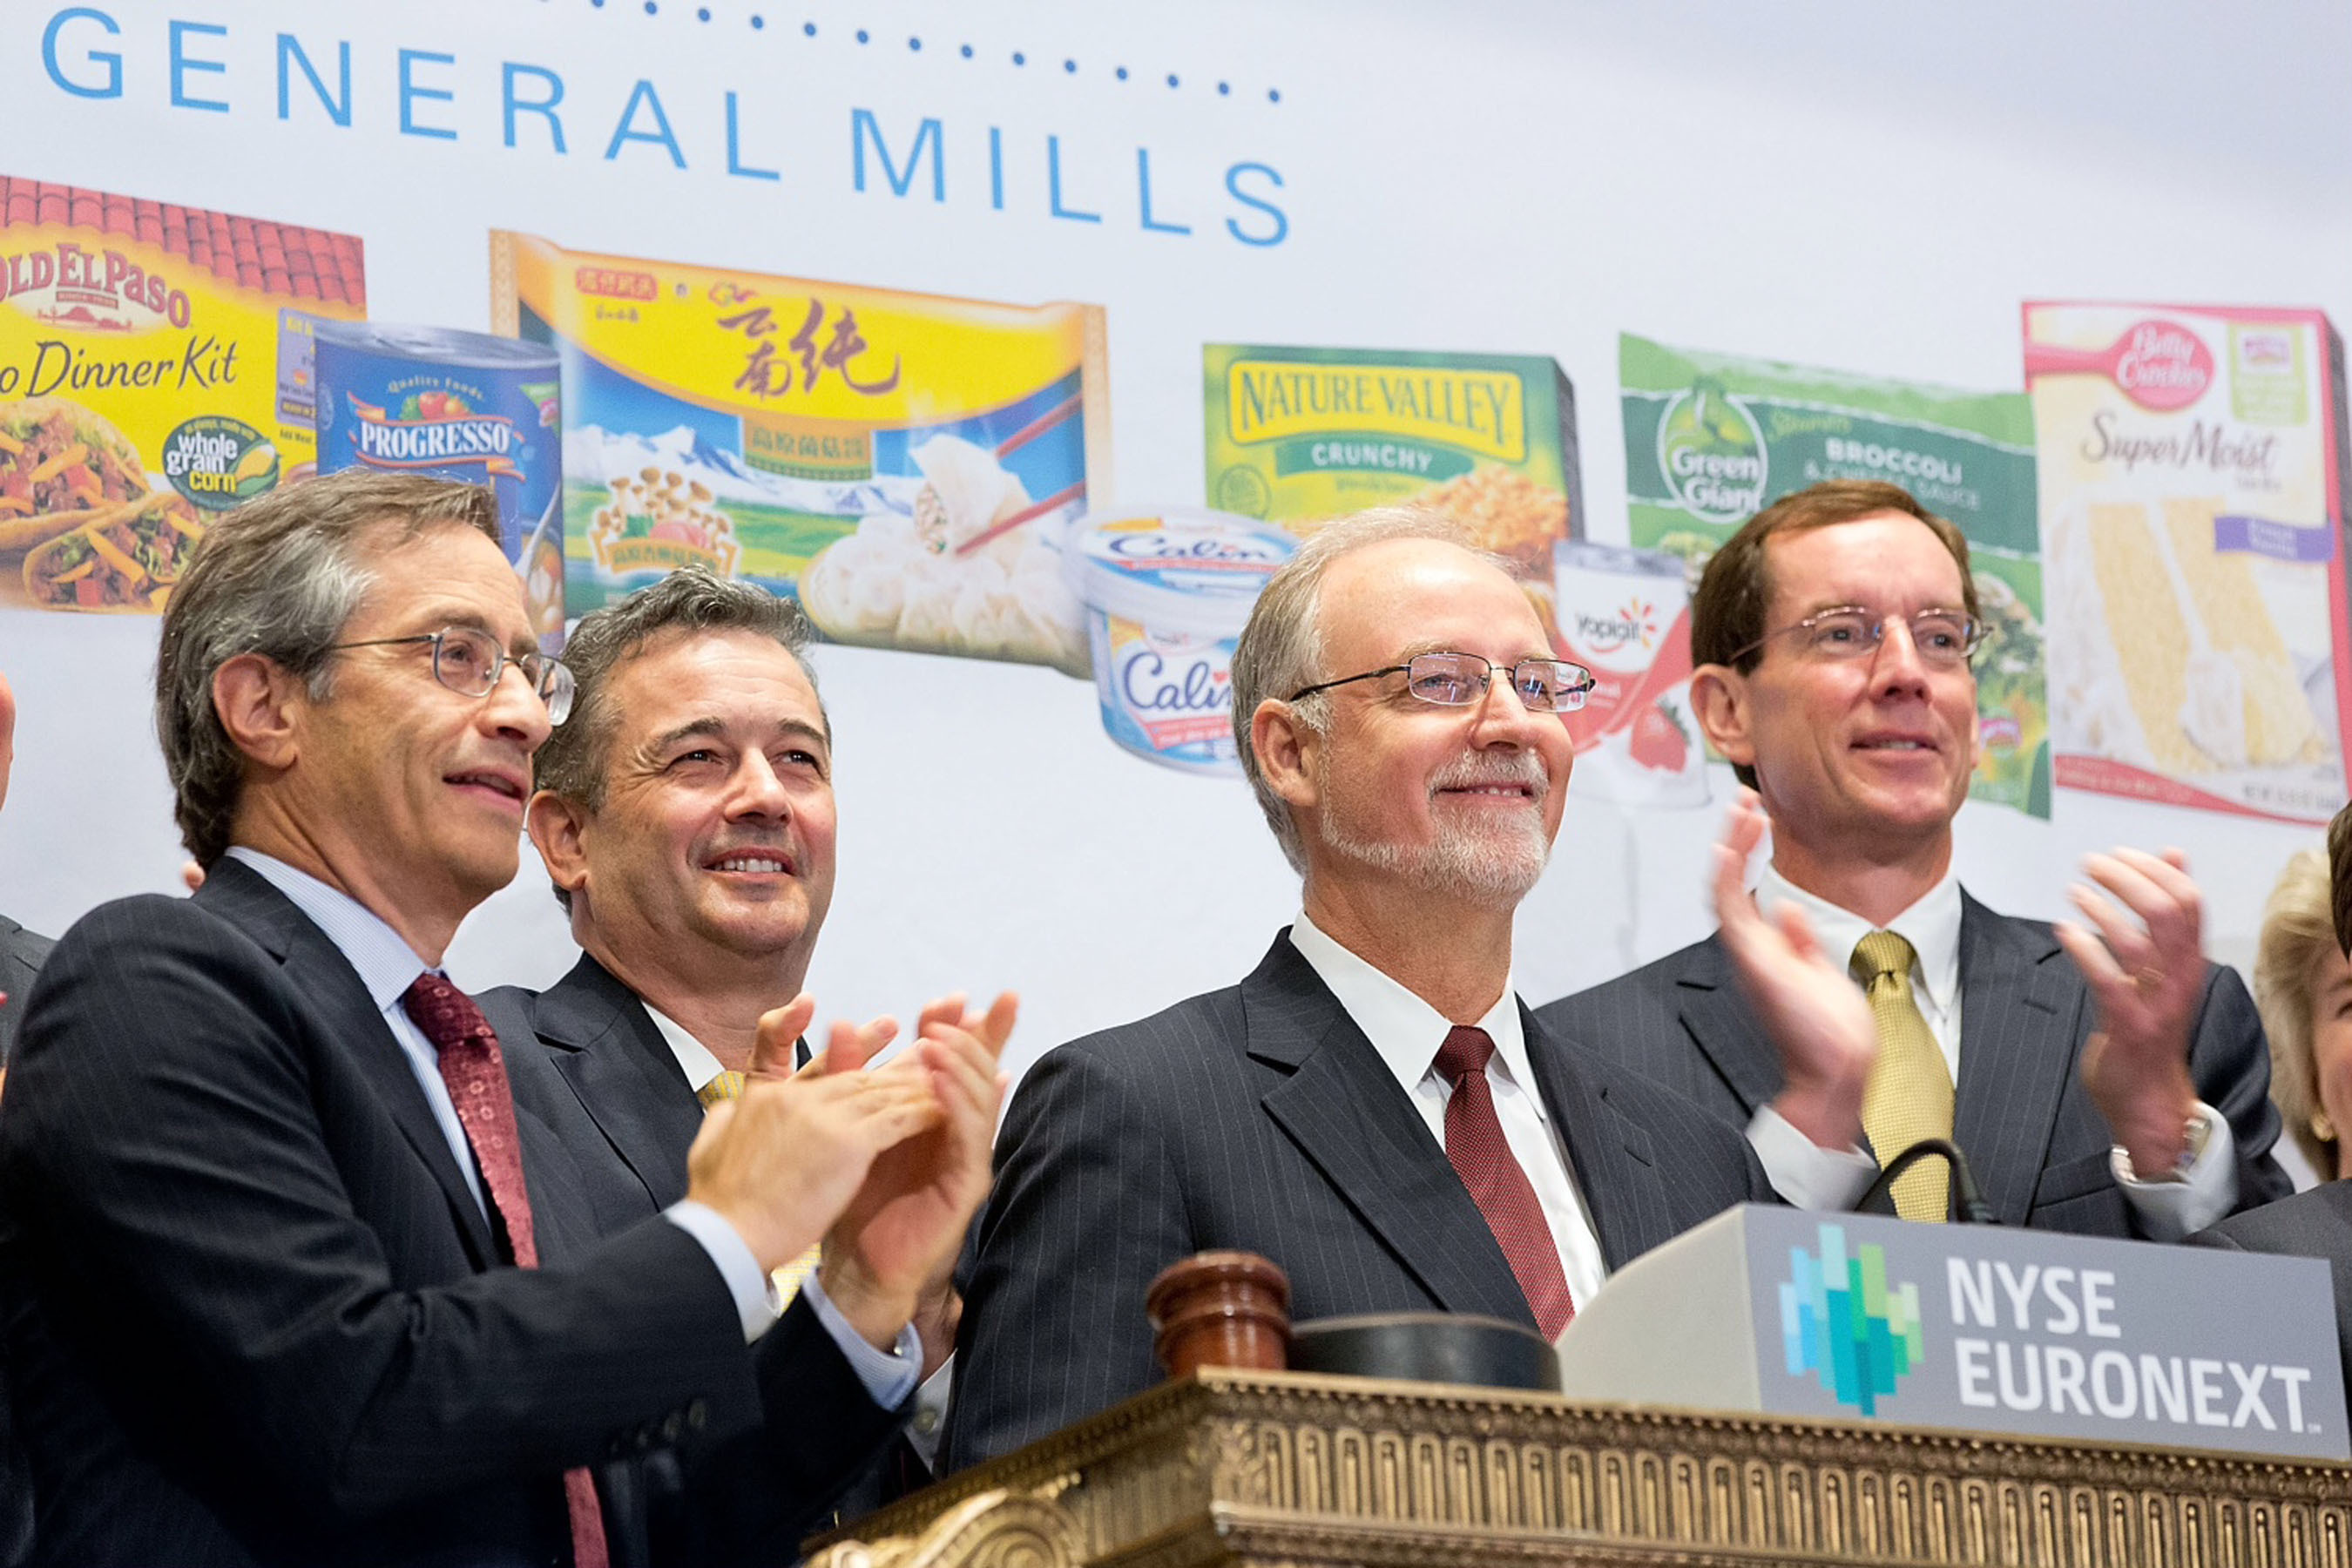 General Mills executives detailed the company's fiscal 2014 growth and innovation plans at its annual investor day at the New York Stock Exchange after ringing the opening bell today.  Pictured from left:  Larry Leibowitz, COO, New York Stock Exchange;  Chris O'Leary, EVP, COO, International, General Mills; Ken Powell, Chairman & CEO, General Mills; and Don Mulligan, EVP, CFO, General Mills.  (PRNewsFoto/General Mills, NYSE Euronext)